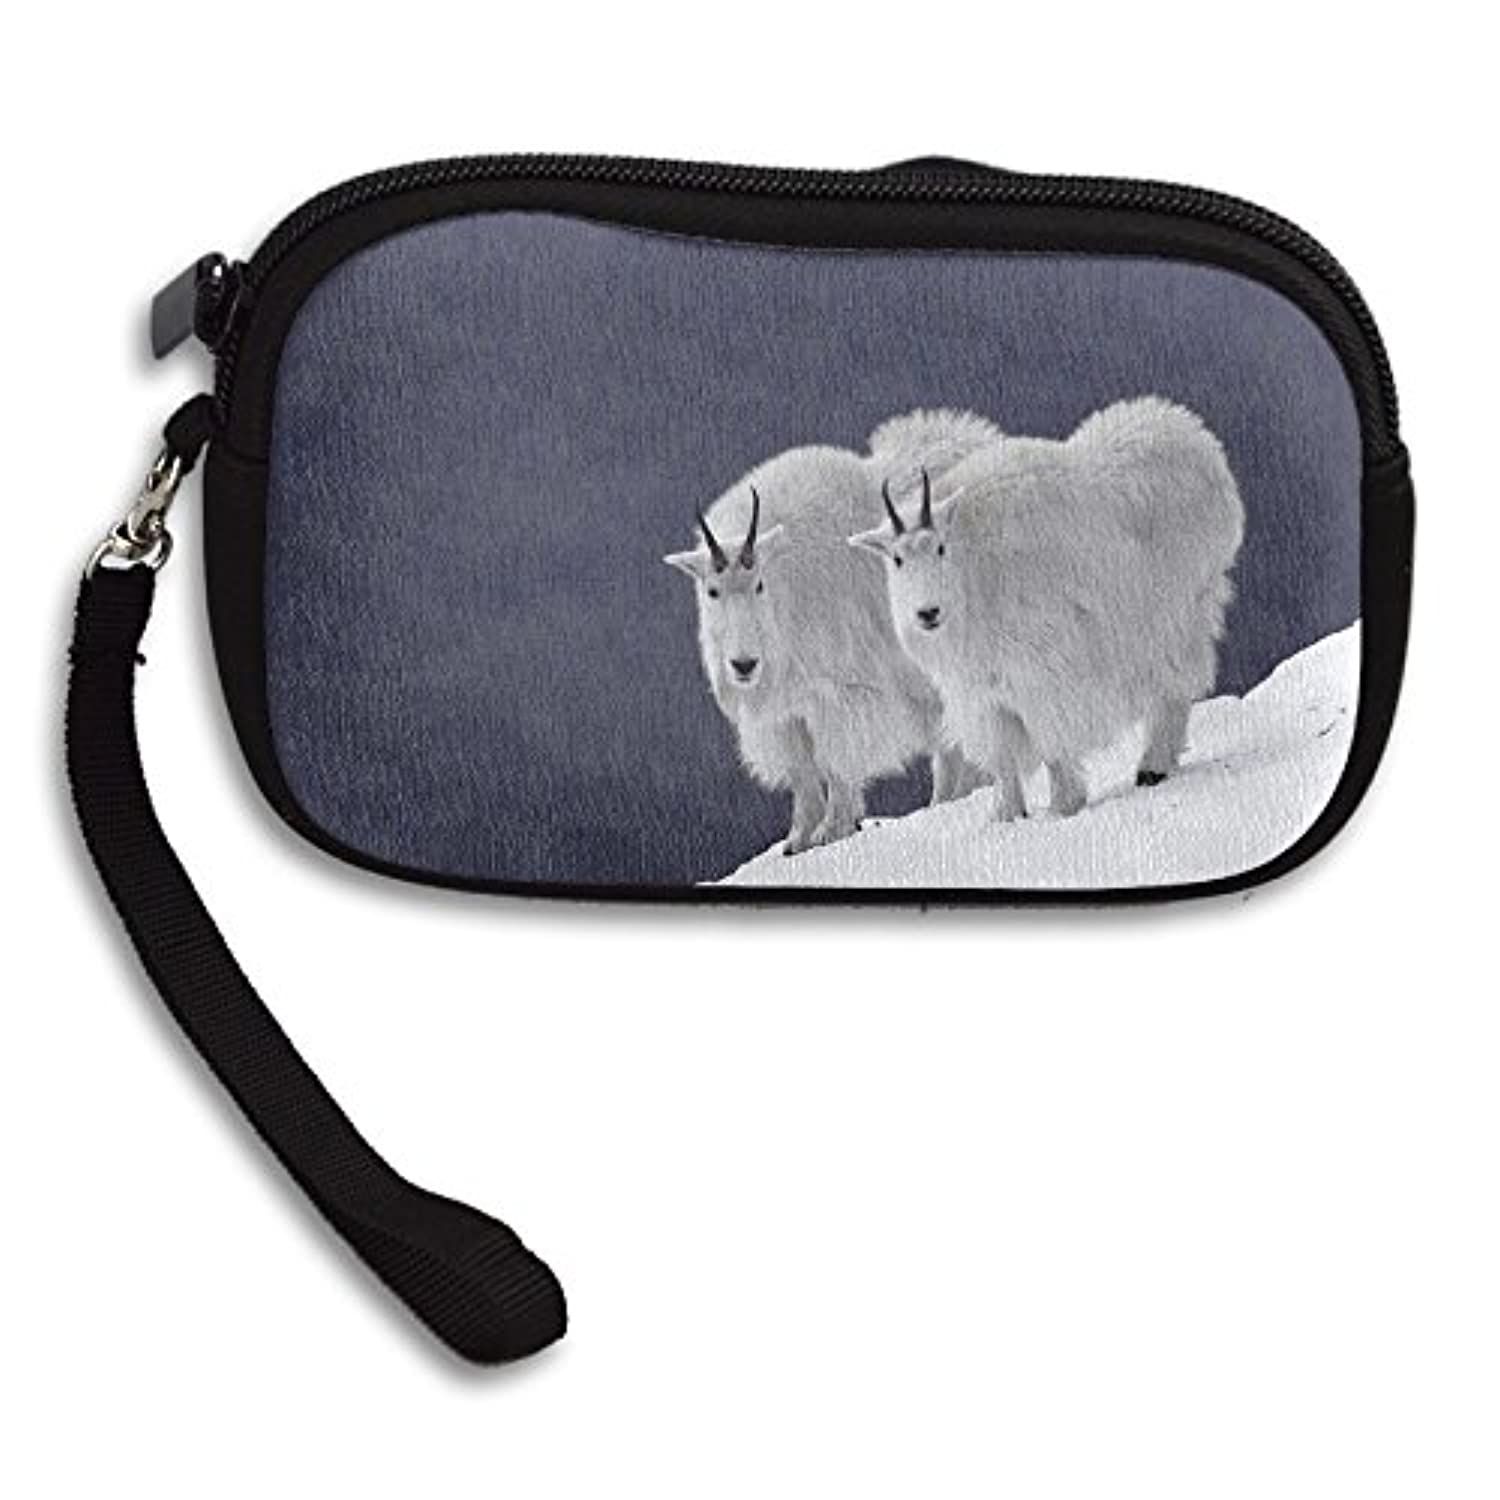 Onepice coin purse APPAREL レディース US サイズ: One Size